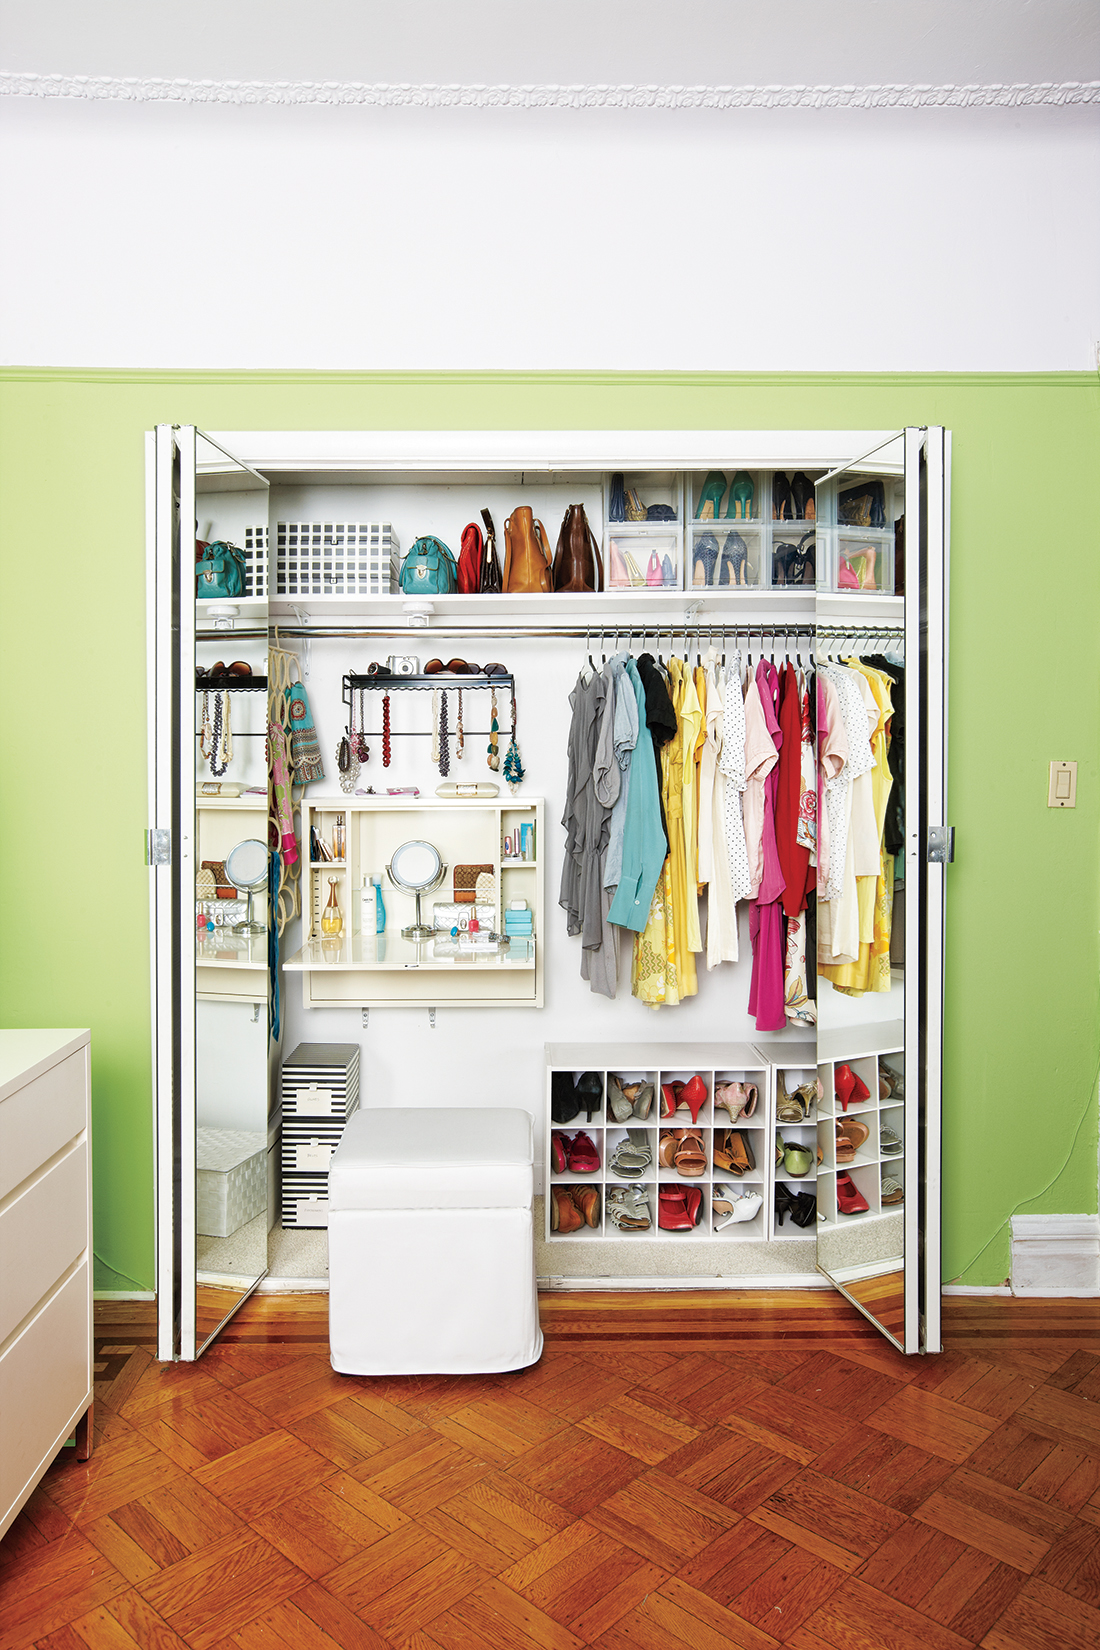 64e956f94c1 6 Things to Purge From Your Closet in the Next 20 Minutes